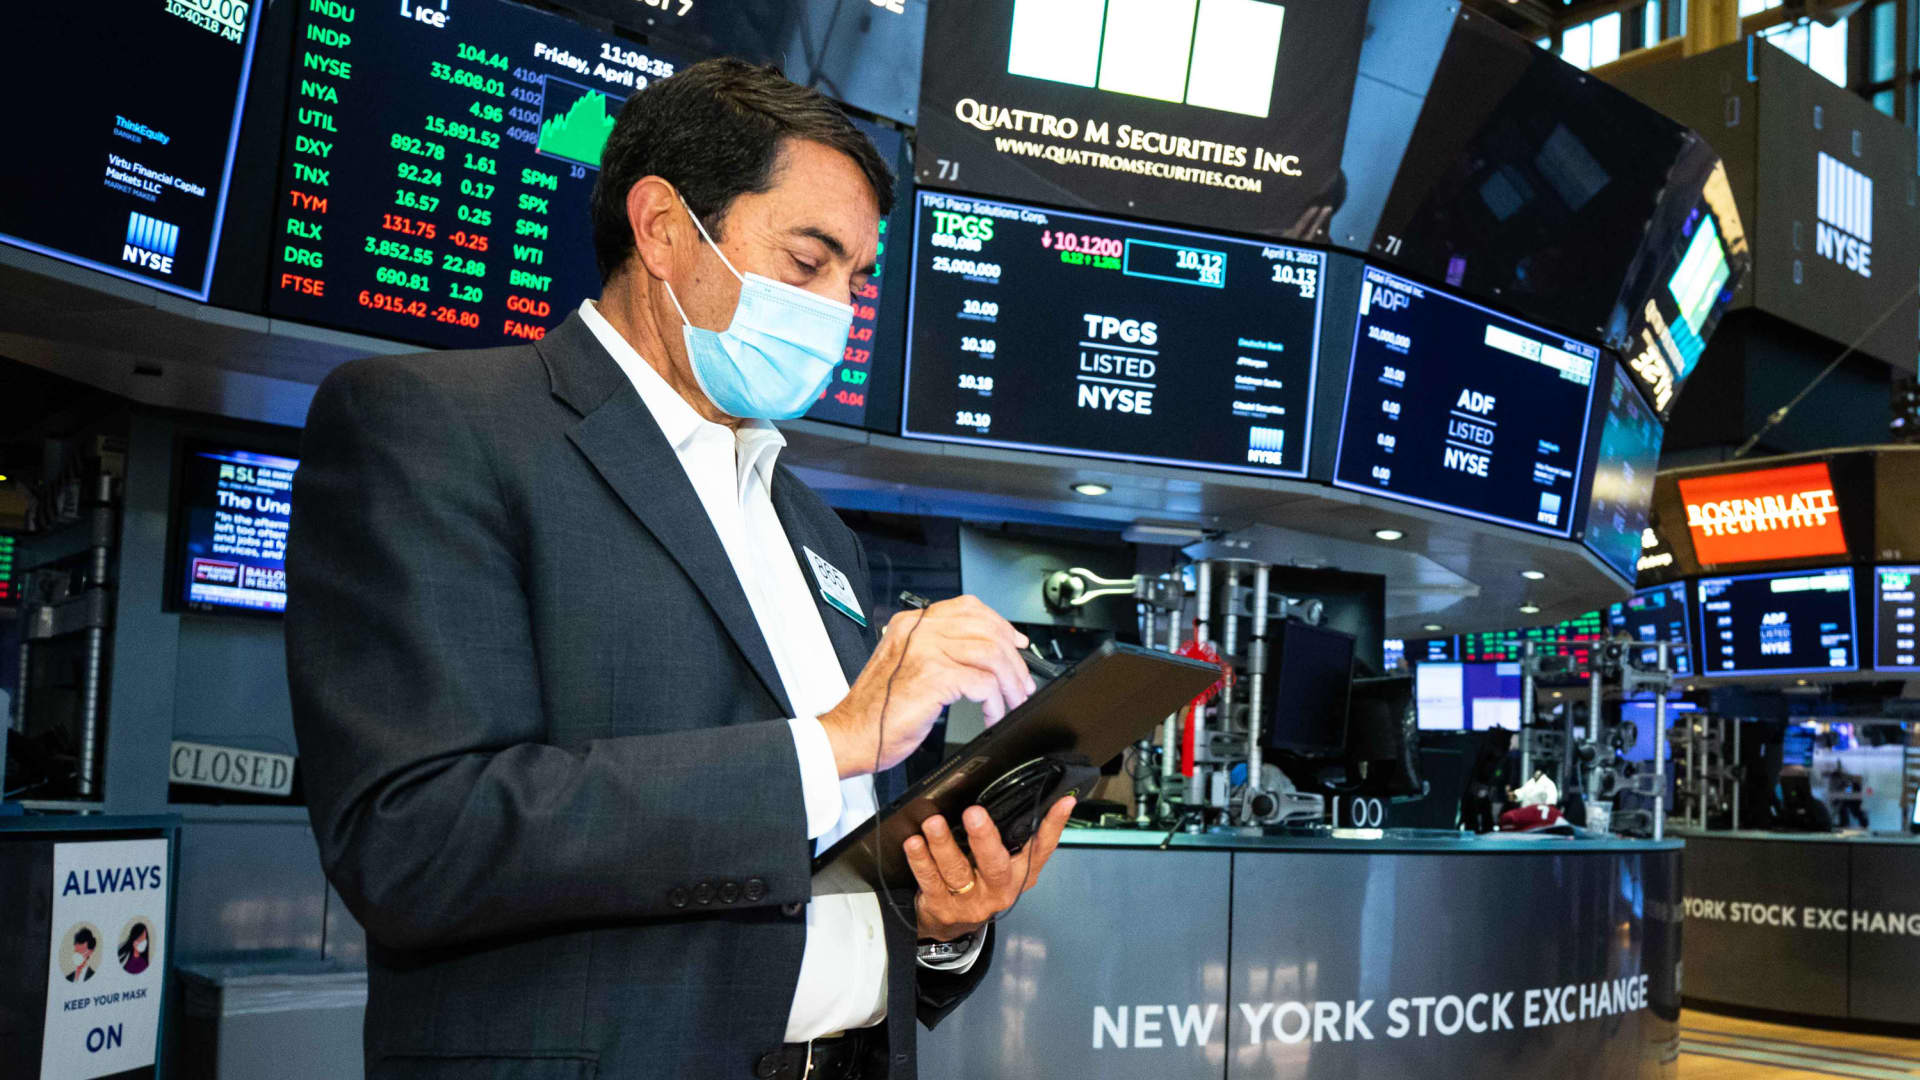 Traders on the New York Stock Exchange.